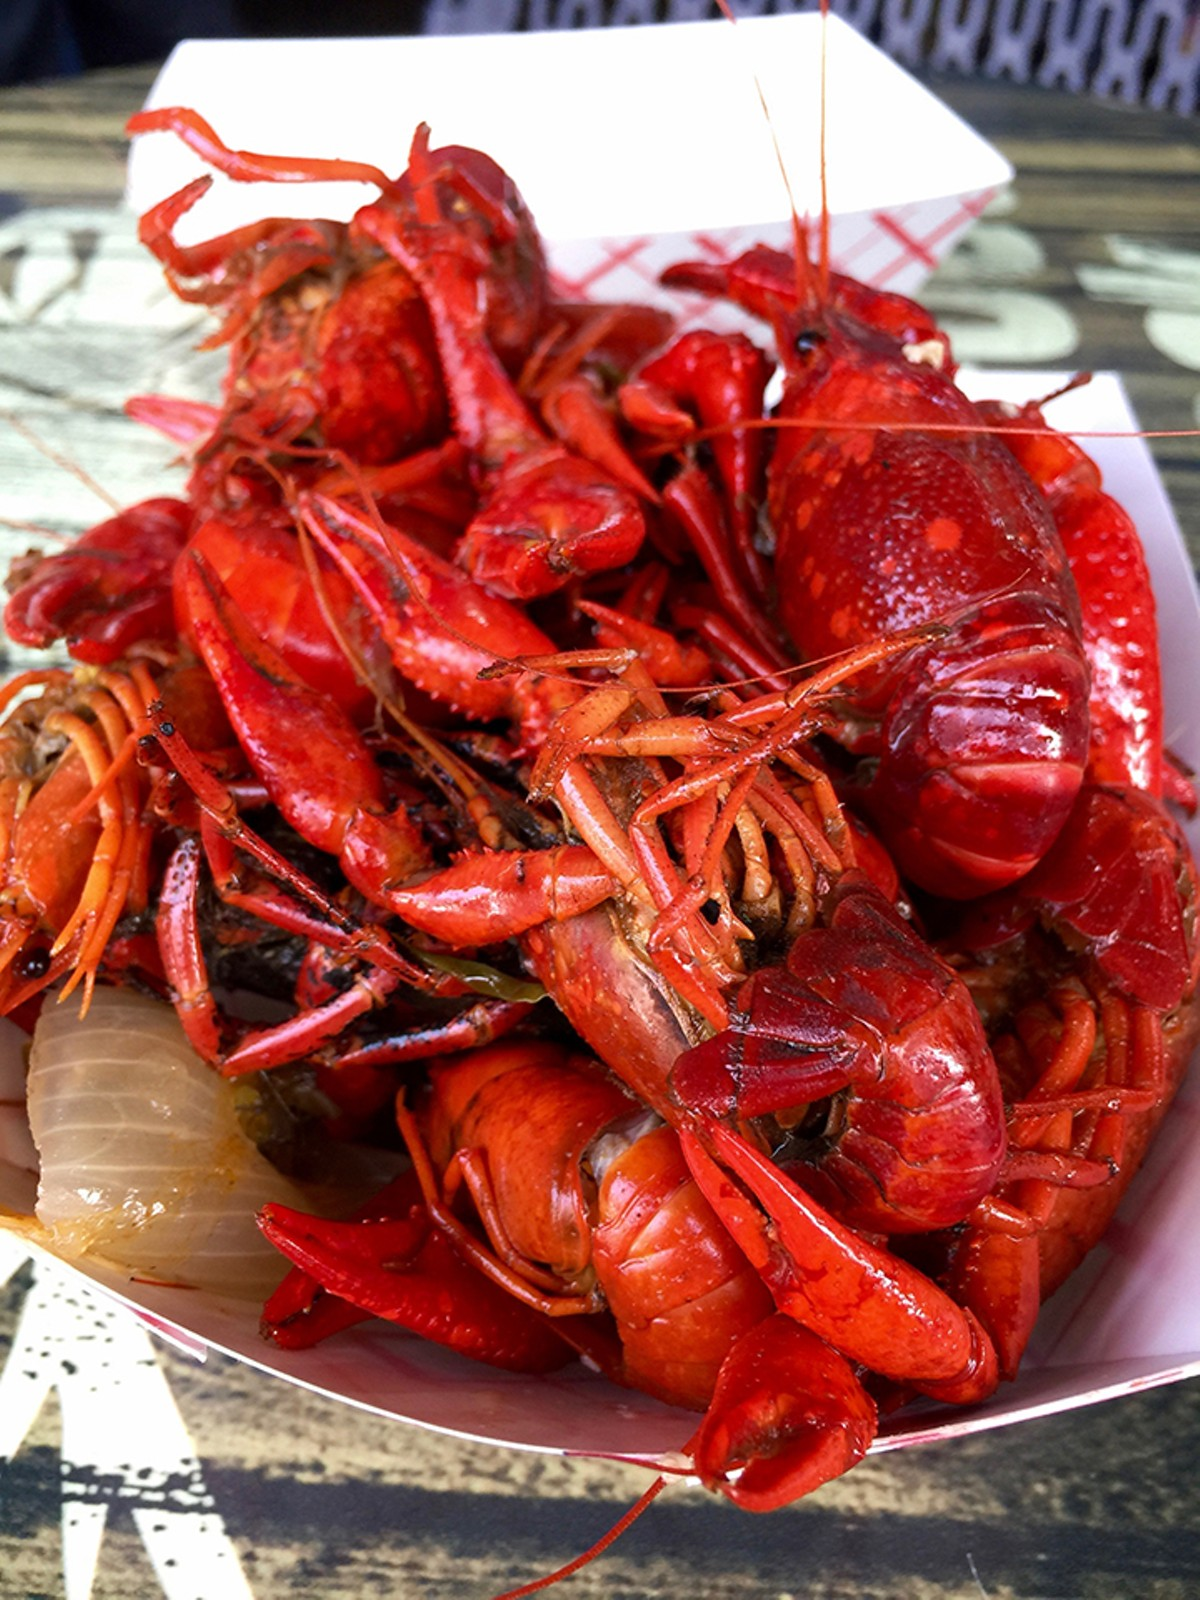 gal_drink_crawfish_credit_rajiv_perera.jpg